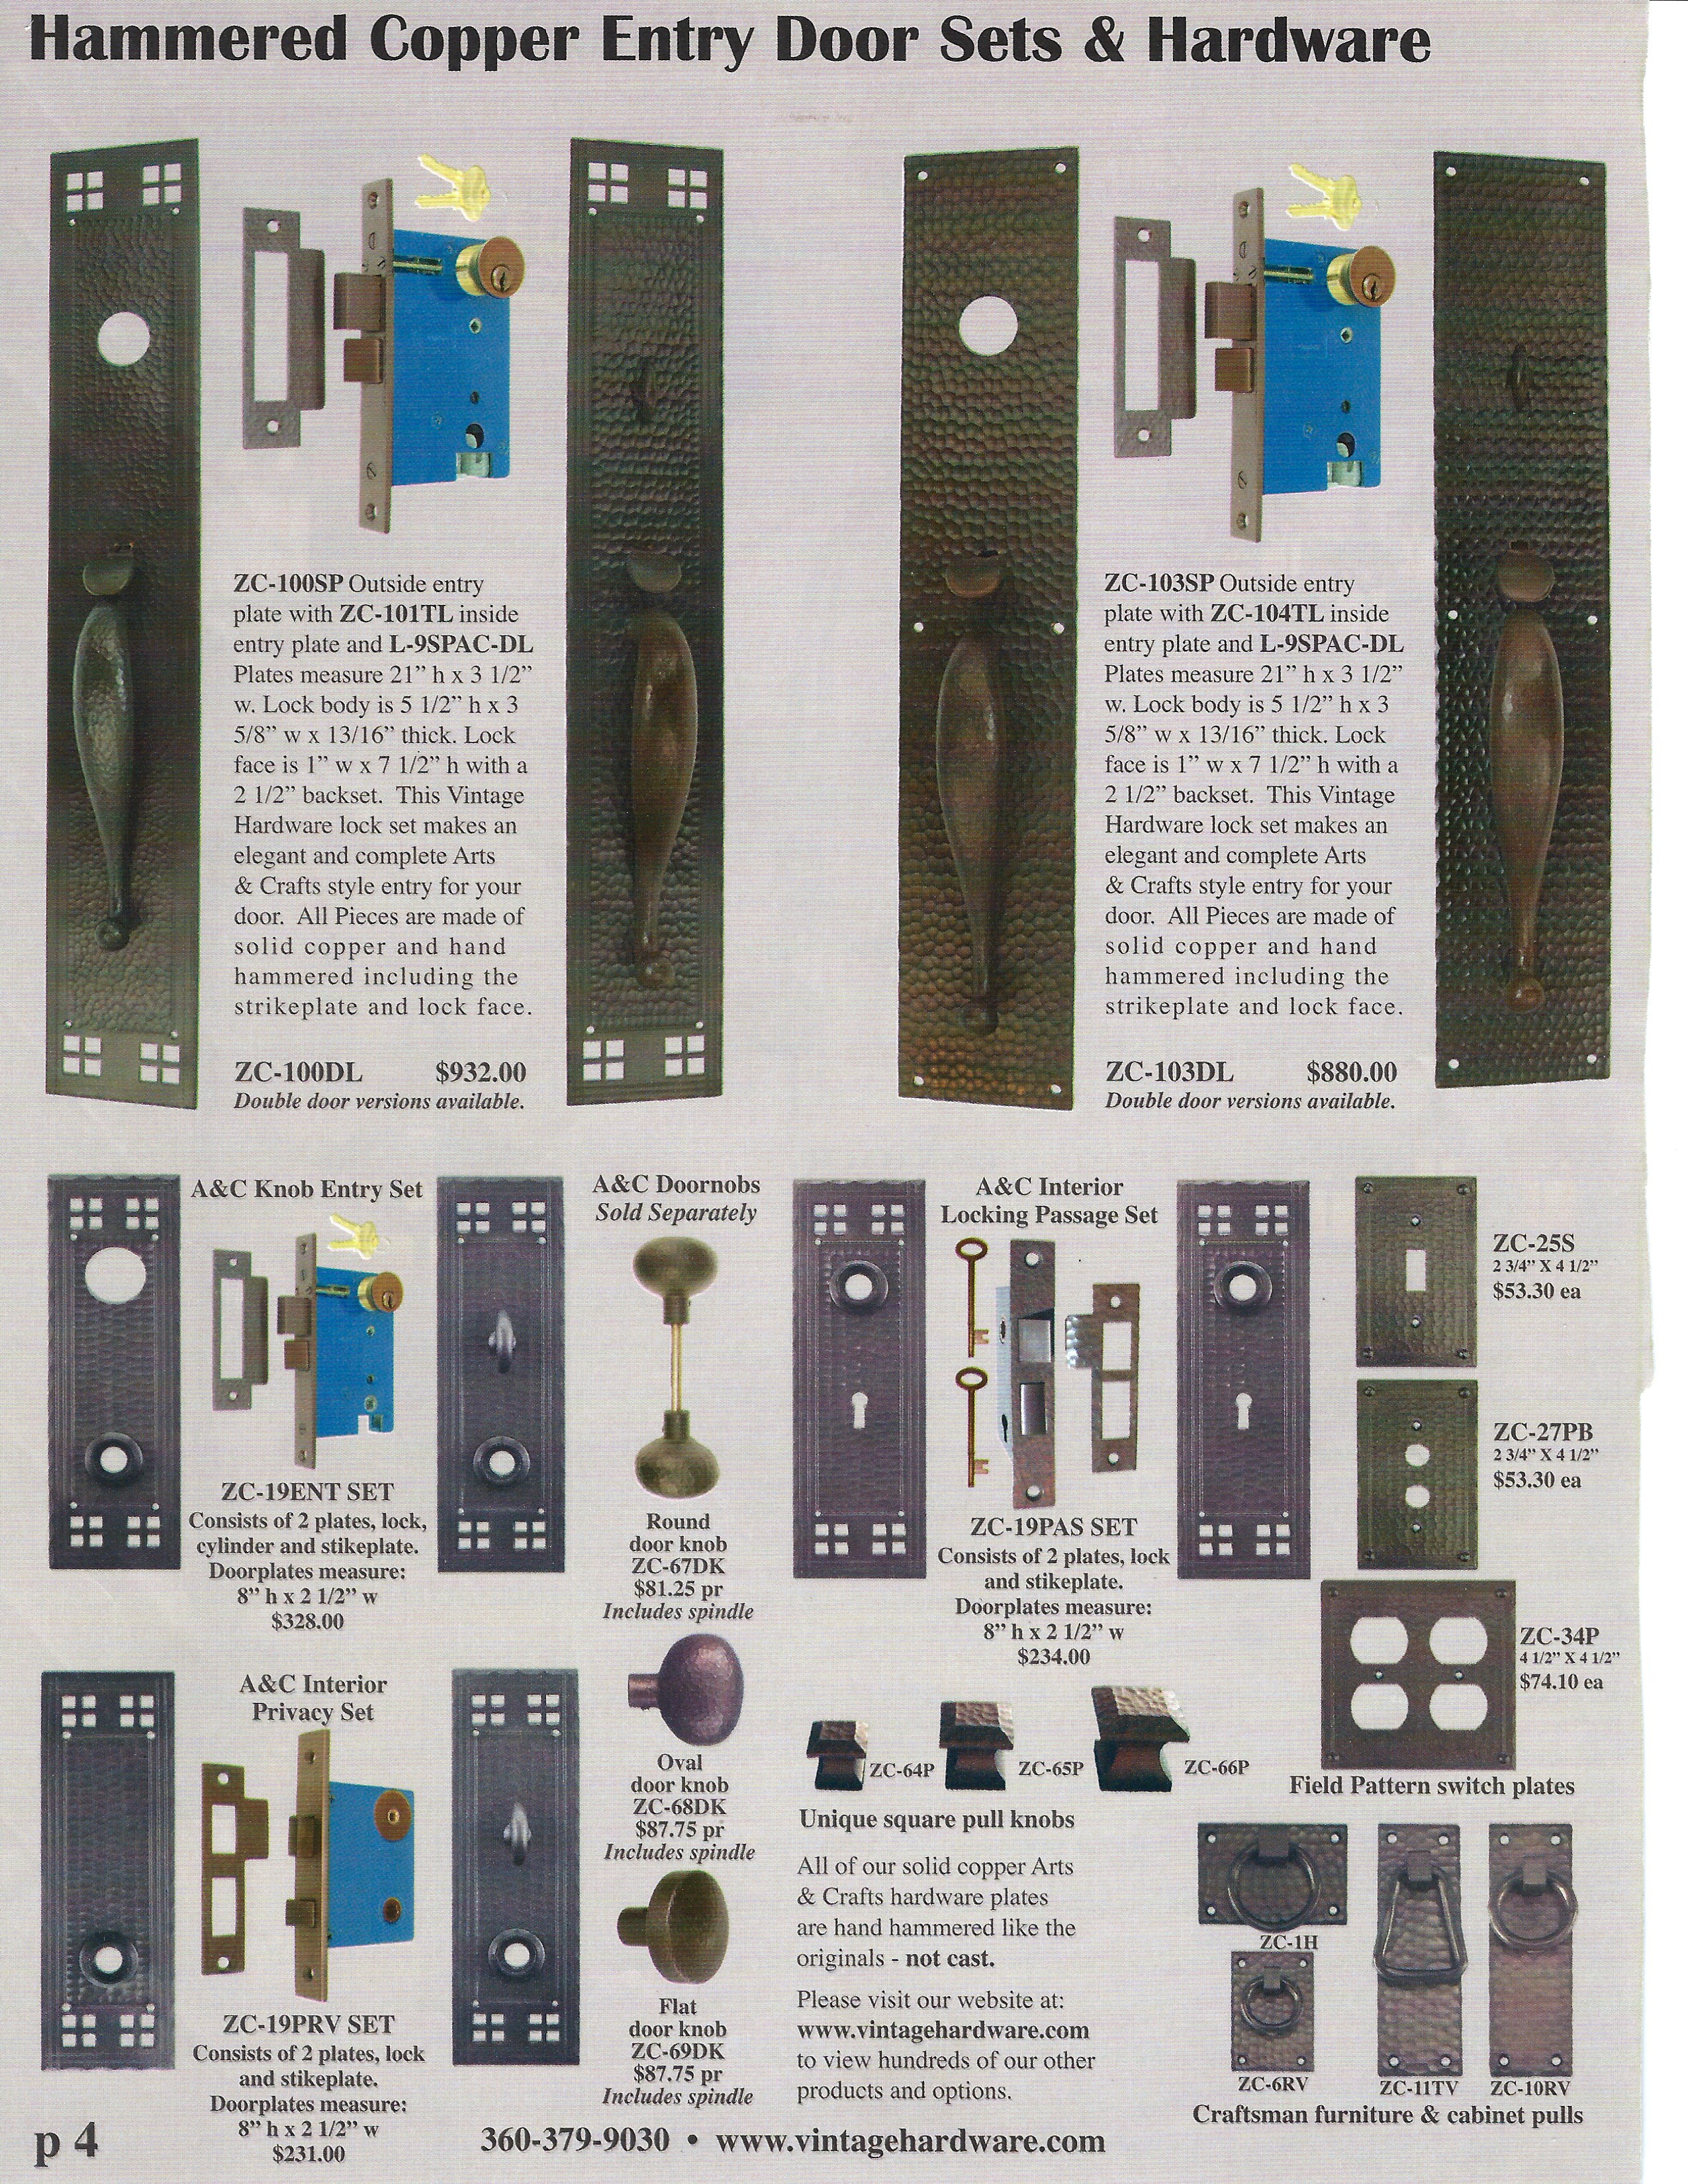 Catalog page 110